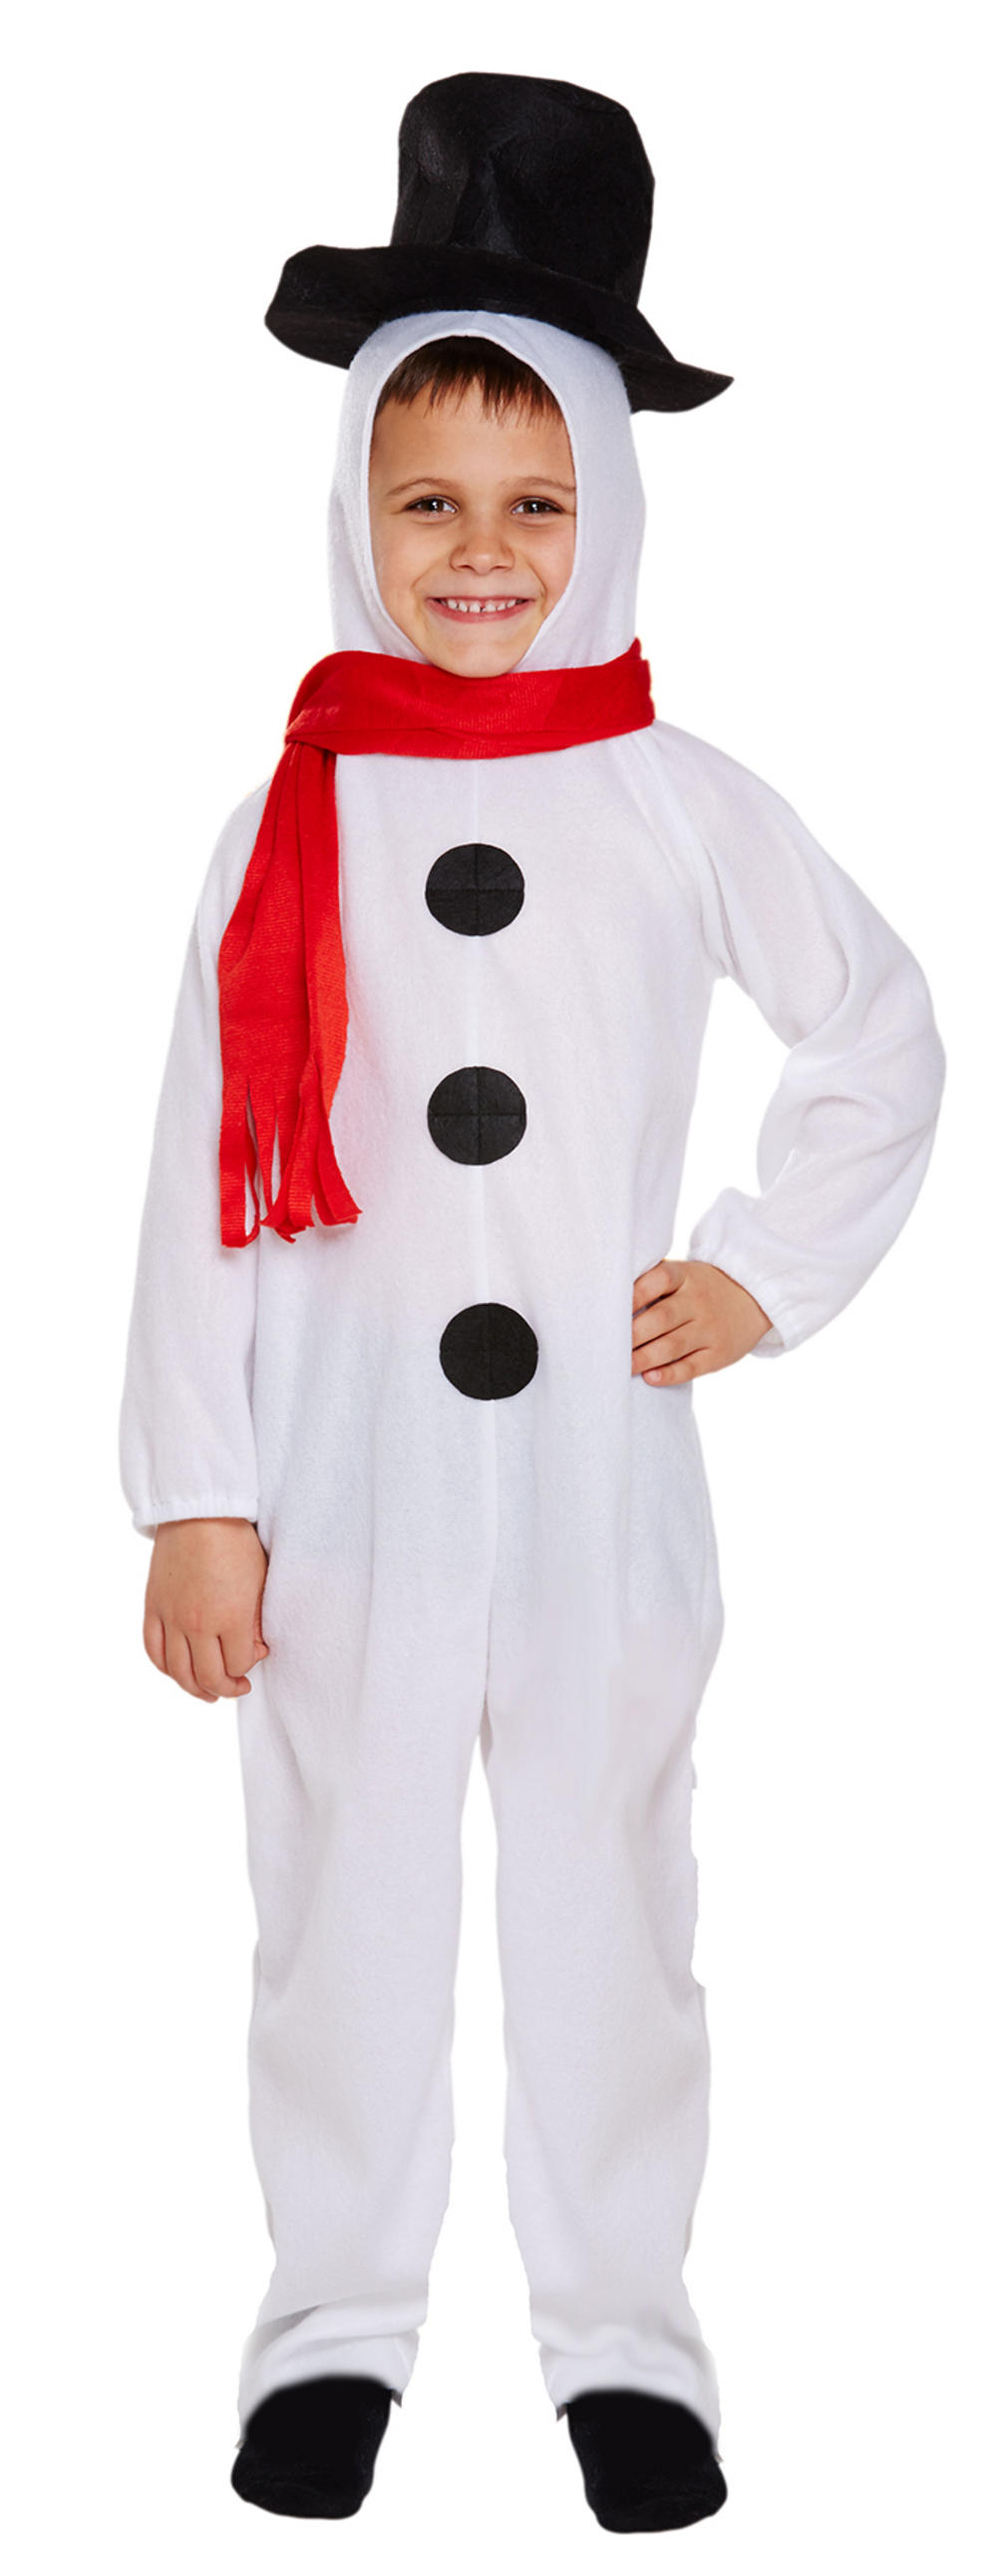 Find great deals on eBay for kids snowman costume. Shop with confidence.